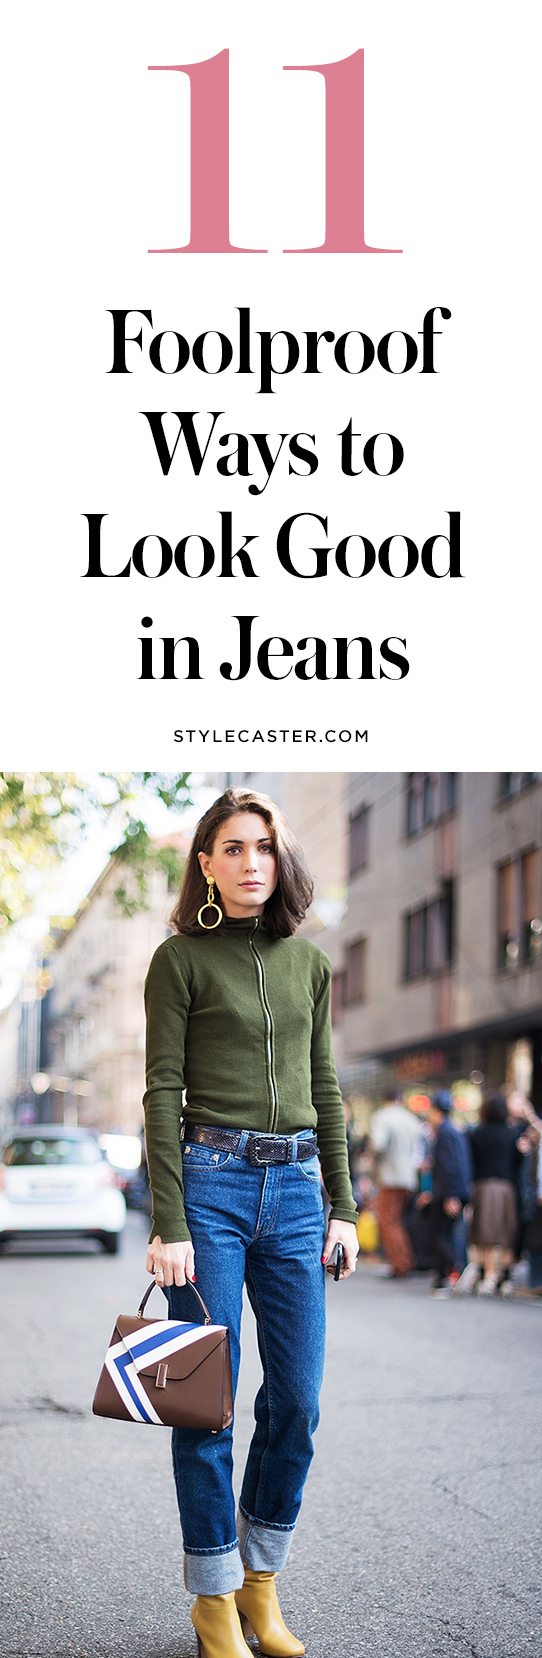 11 Foolproof Ways To Look Good In Jeans | @stylecaster